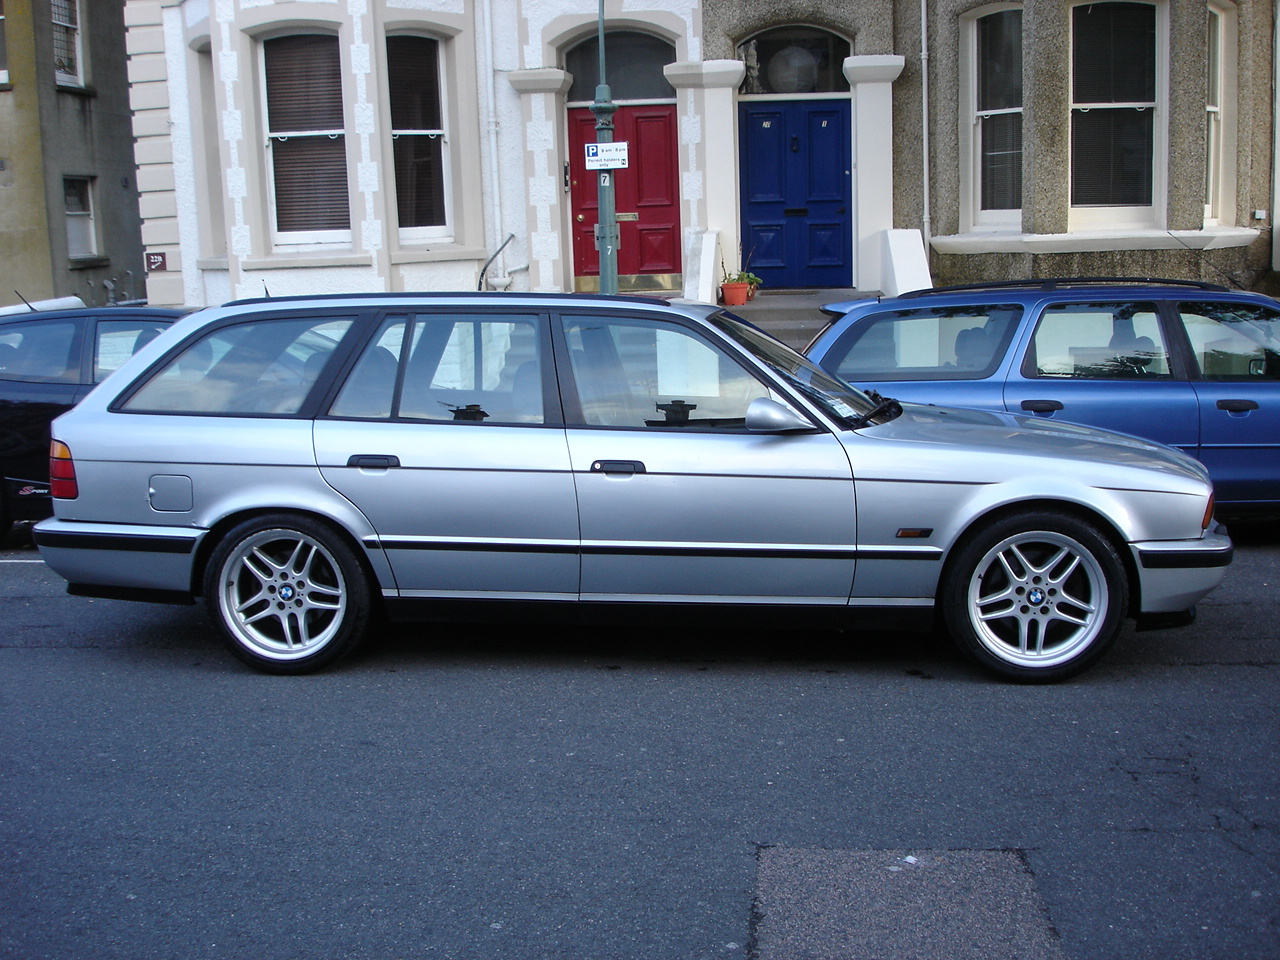 1993 Bmw 525i For Sale 1995 Bmw E34 M5 Touring Rear Pictures to pin on Pinterest